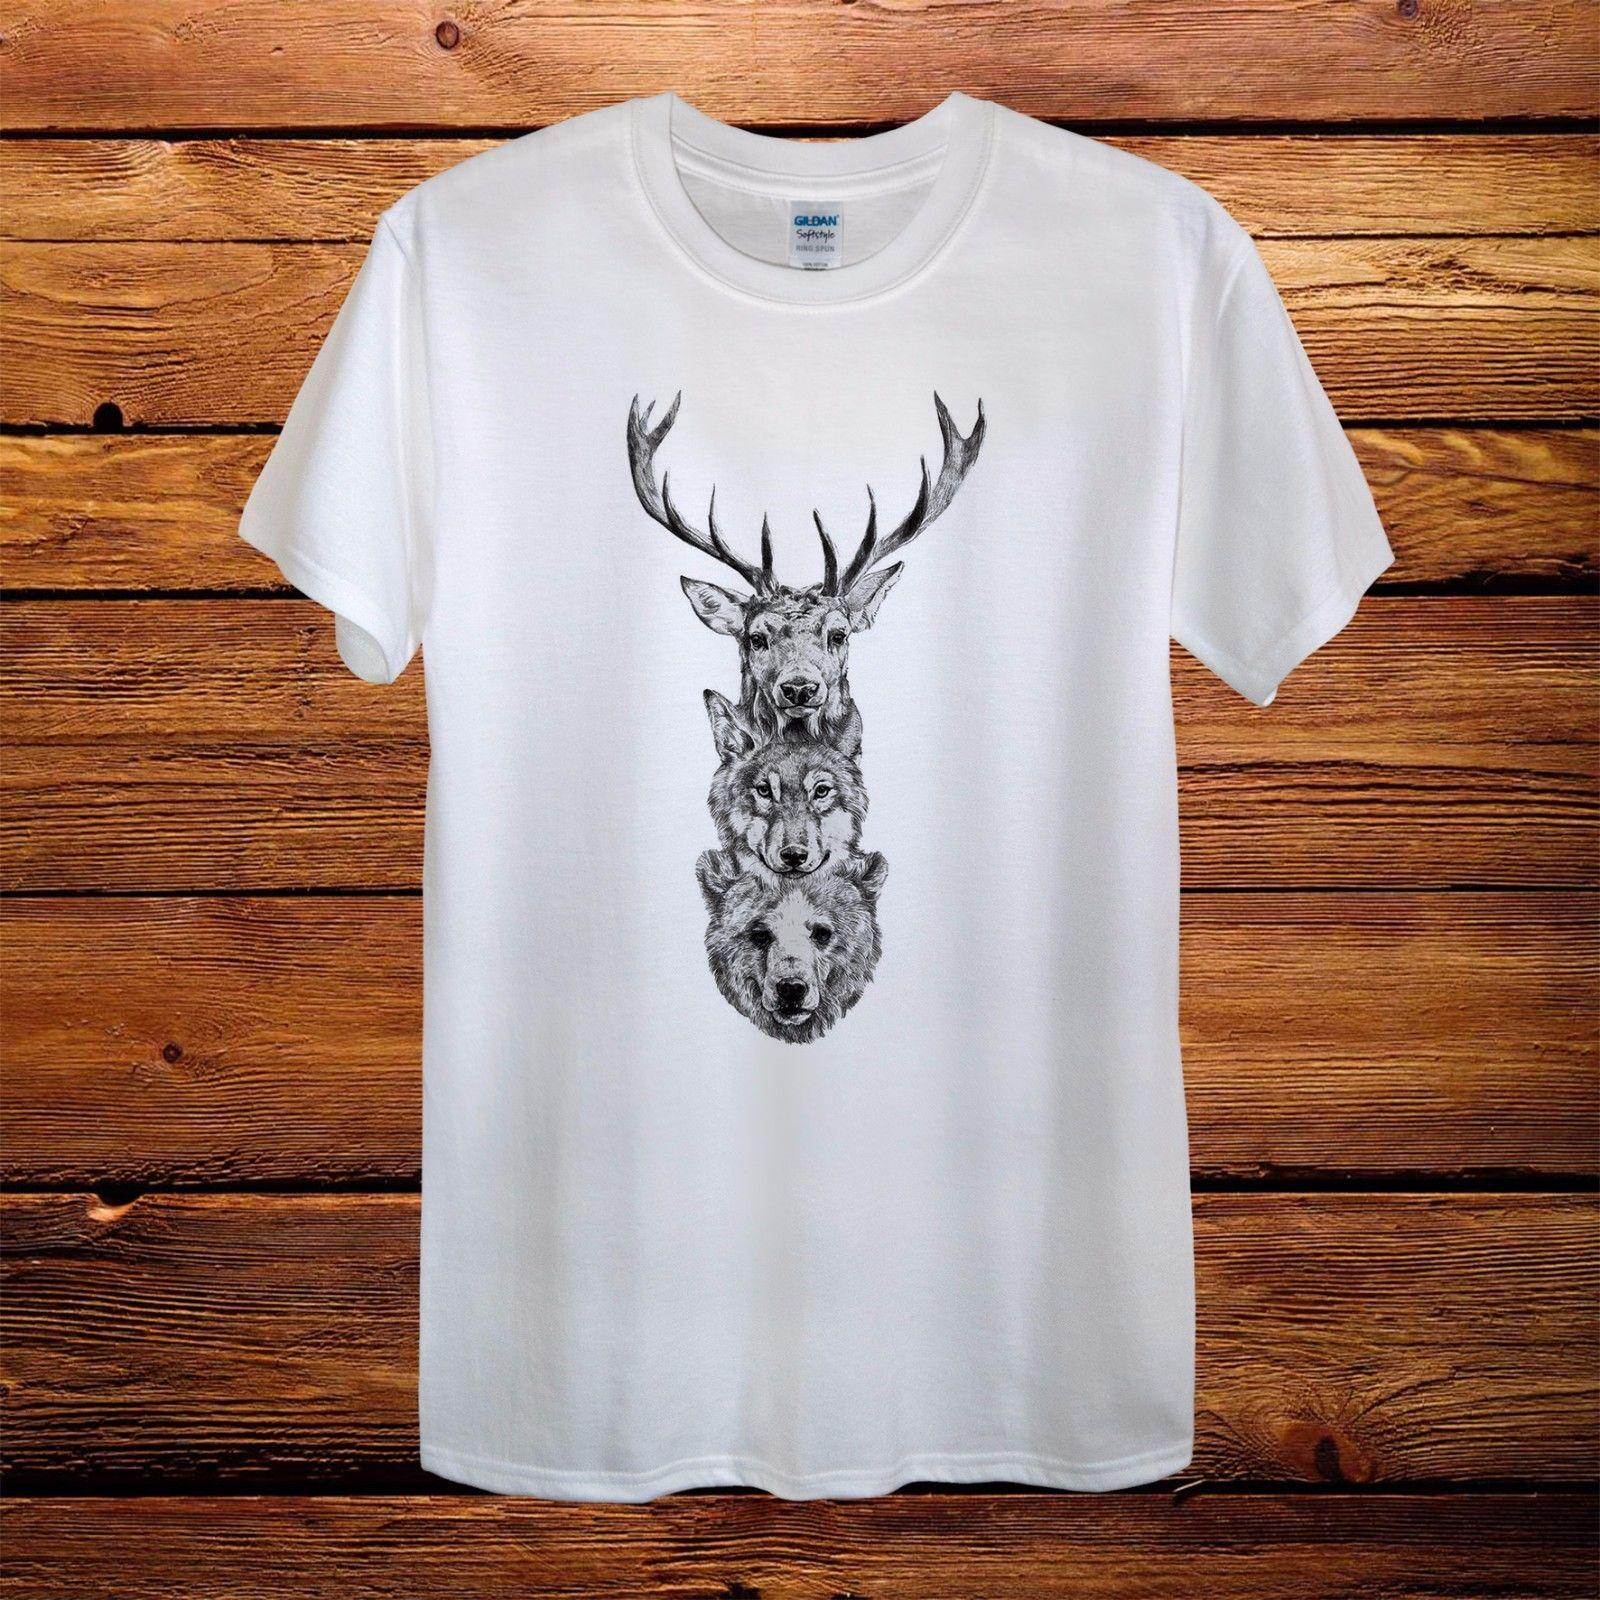 Deer Wolf Bear Animal New Design T-Shirt Men Funny free shipping Unisex Casual gift